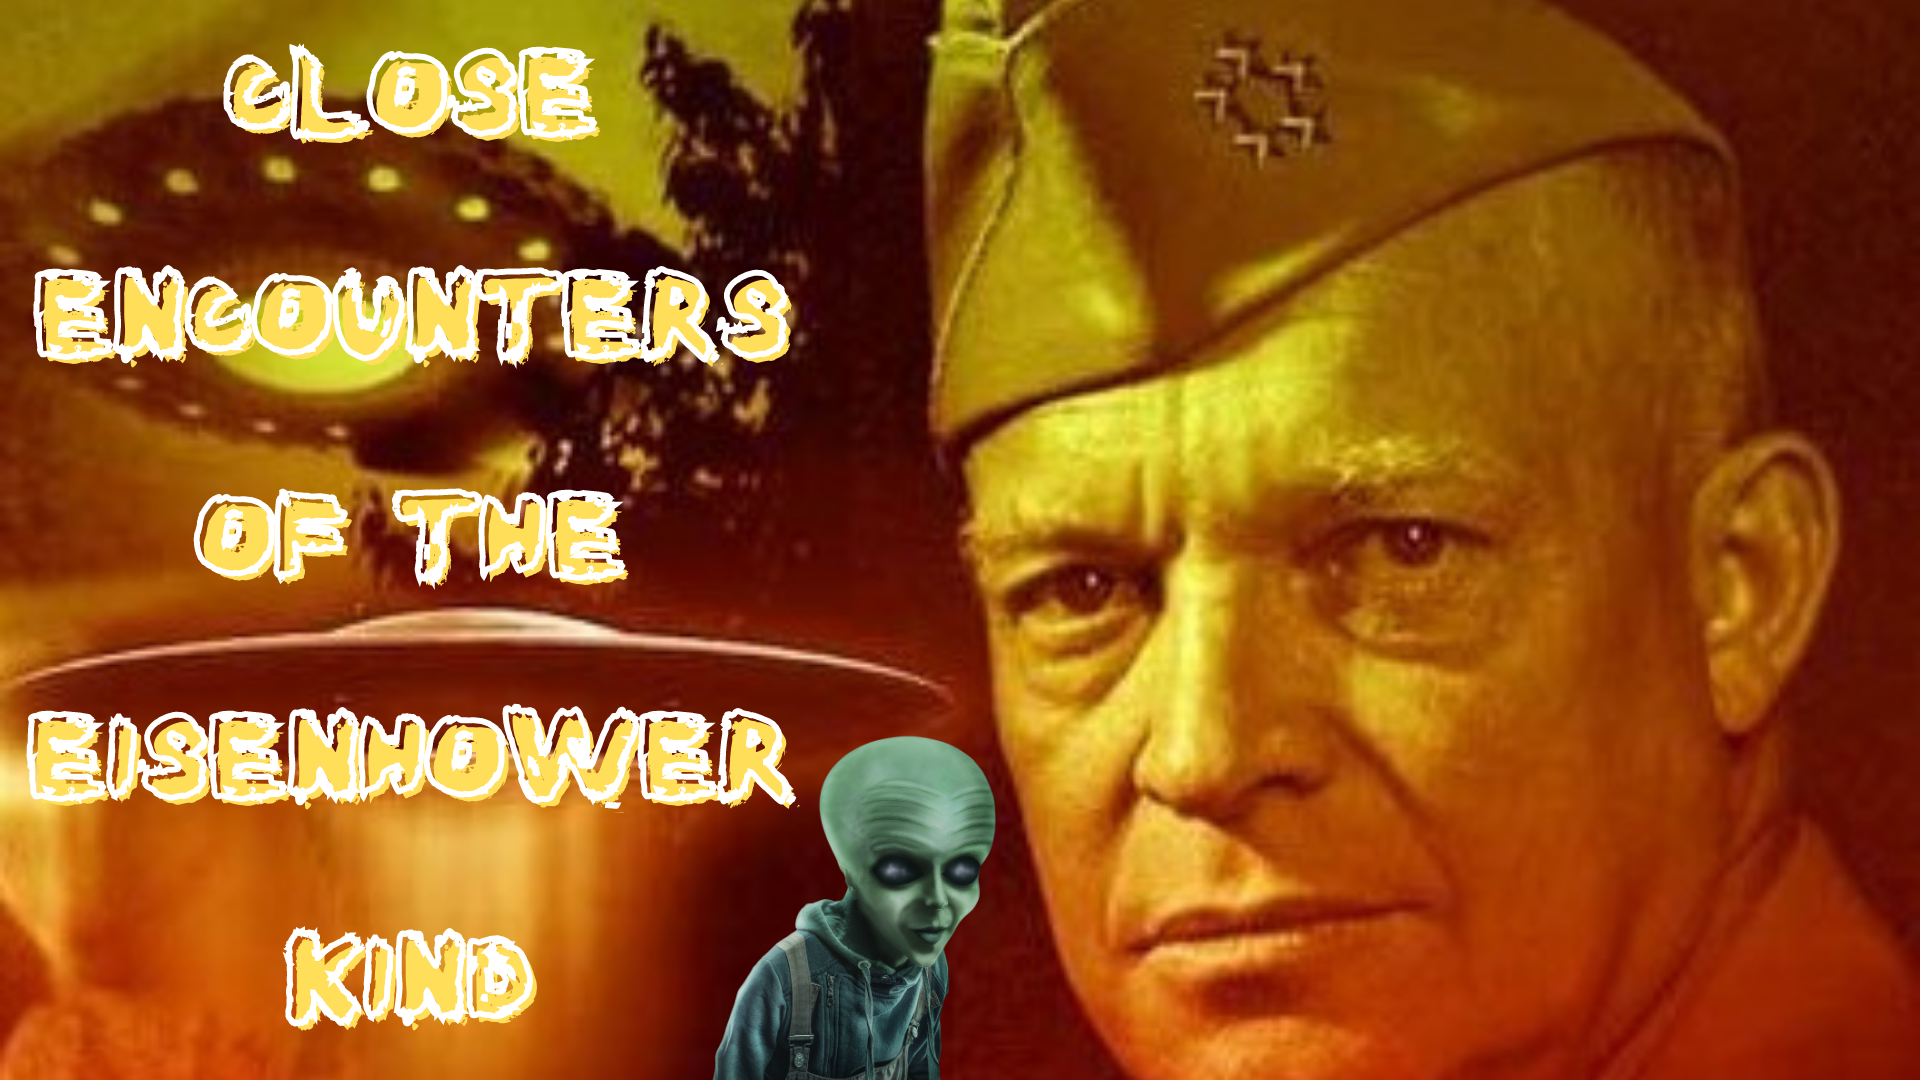 Thumbnail for Ep. #415: Close Encounters of the Eisenhower Kind w/ Paul Blake Smith